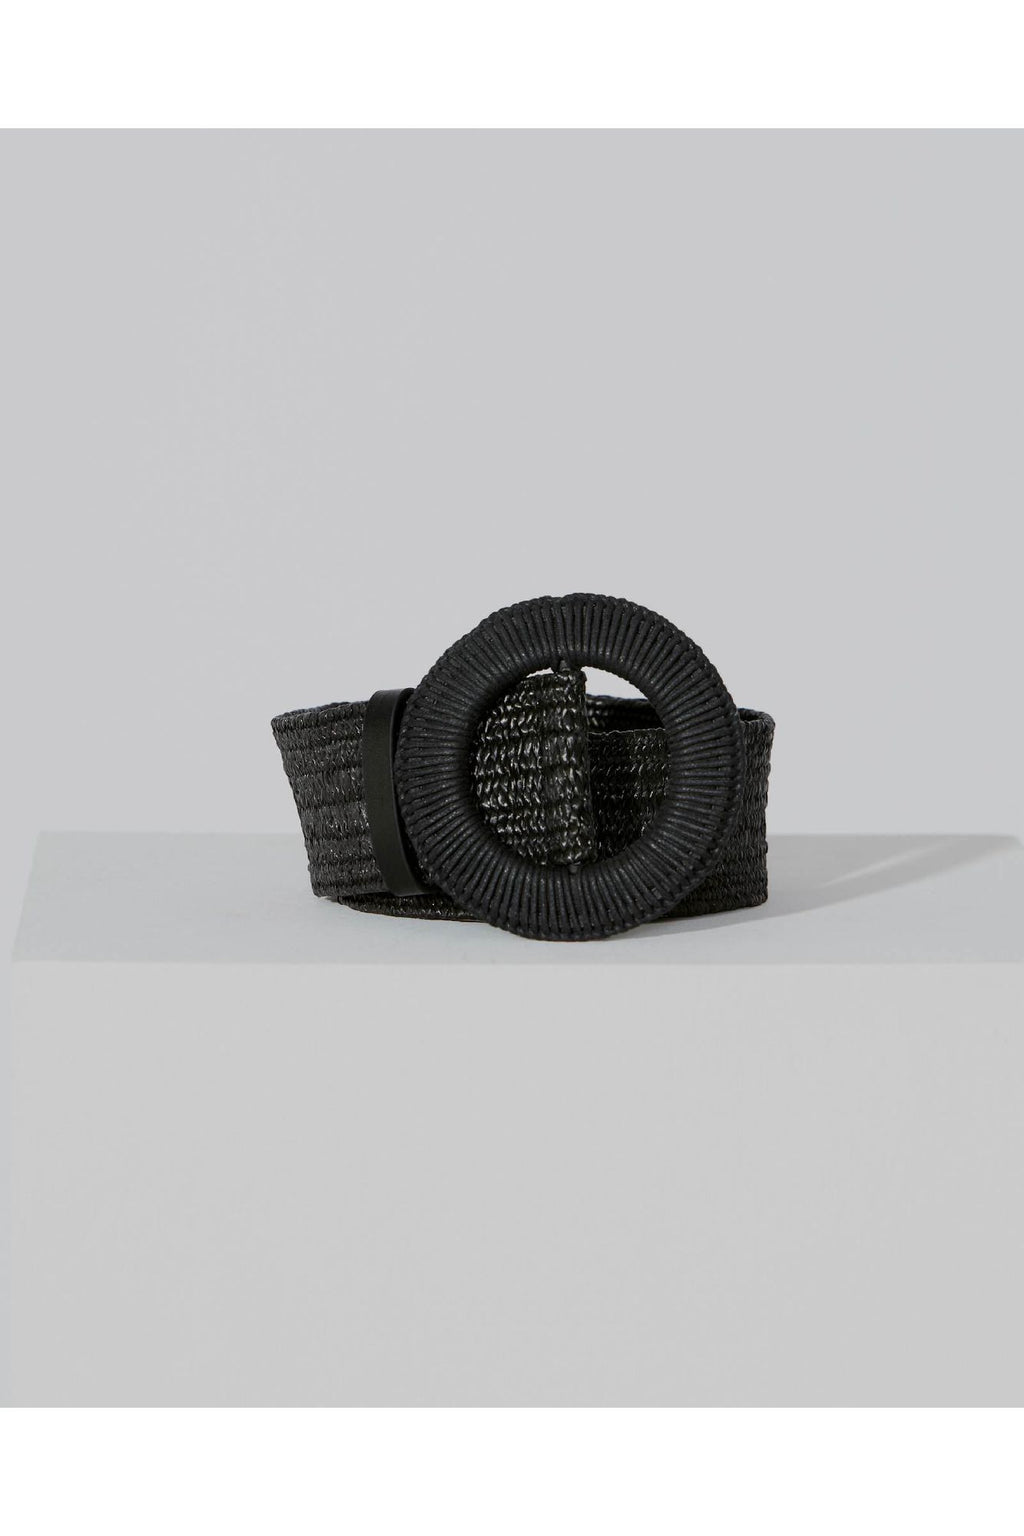 Fate + Becker Loom with a Weaver Belt - Black | Buy Online at Weekends